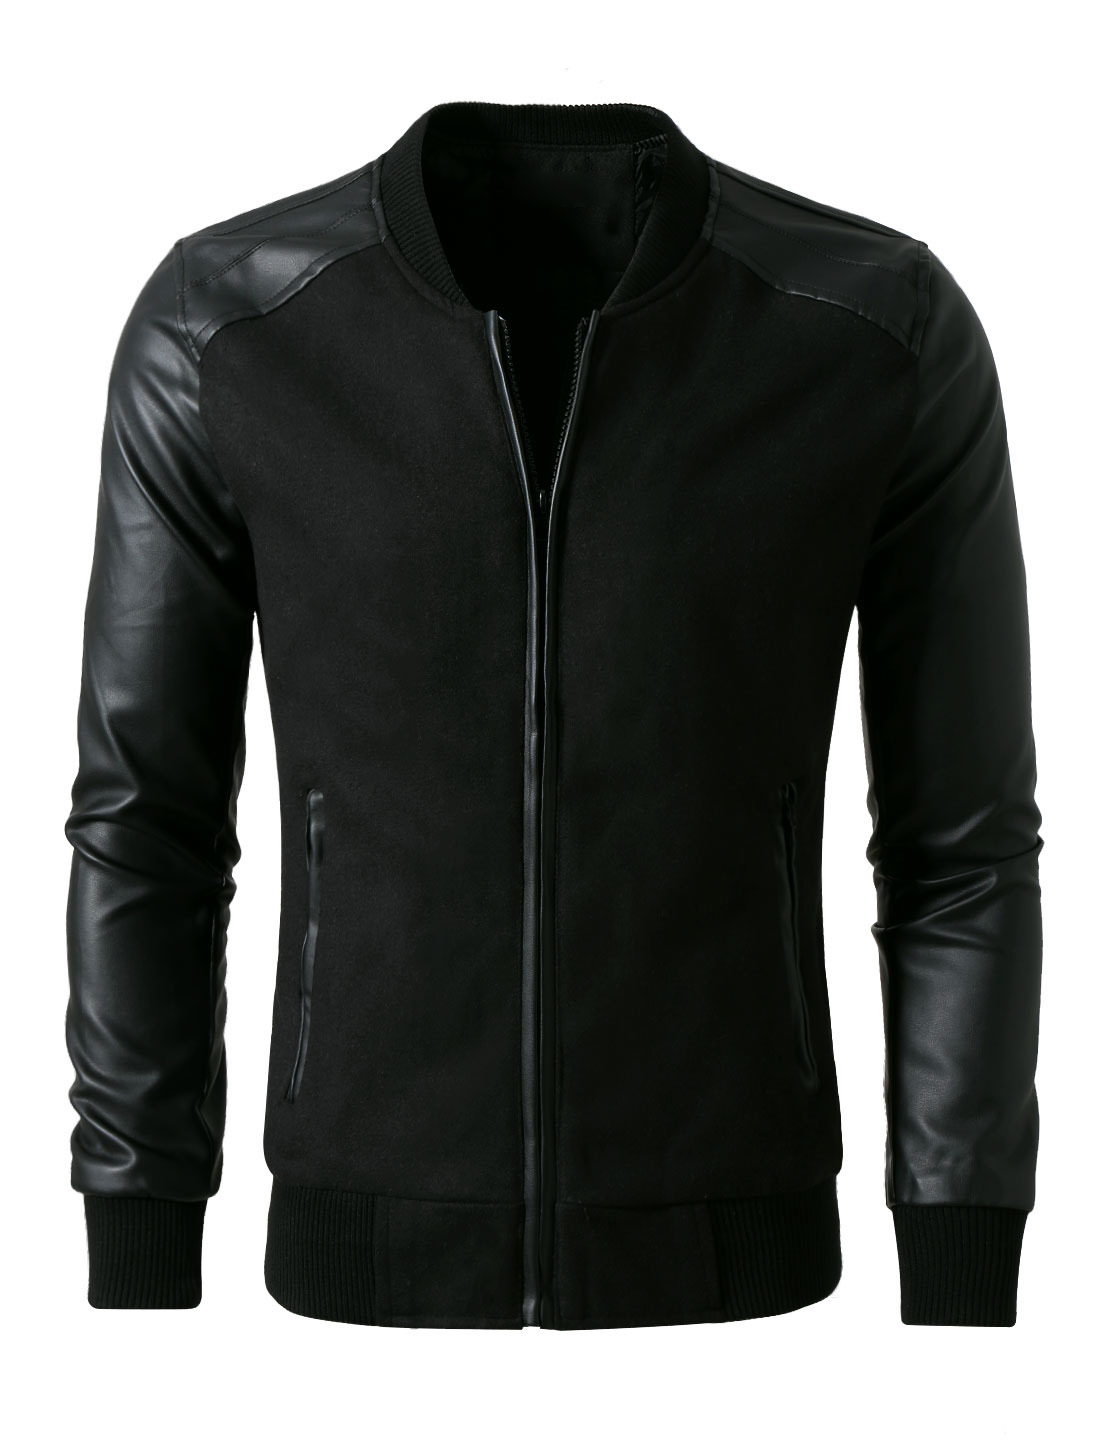 Men Fashion Rib Knit Collar Long Sleeve Leather Splice Jacket S